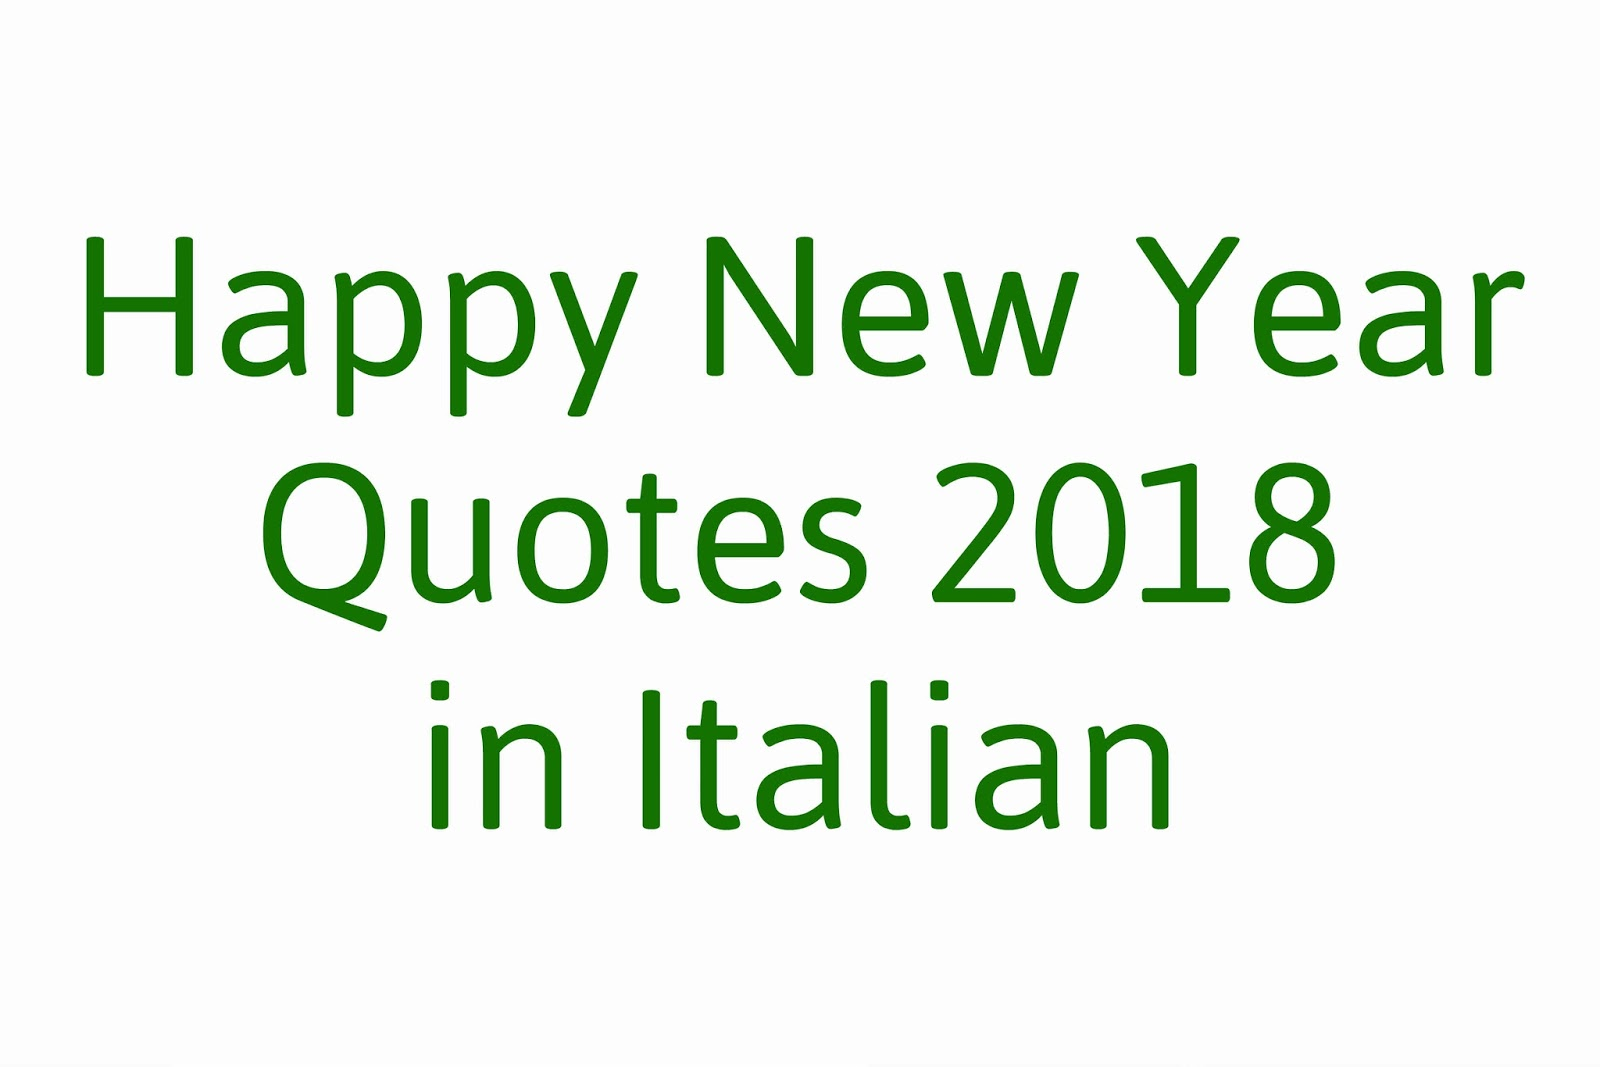 Quotes 2018 Happy New Year Quotes 2018 In Italian  Happy New Year 2K18